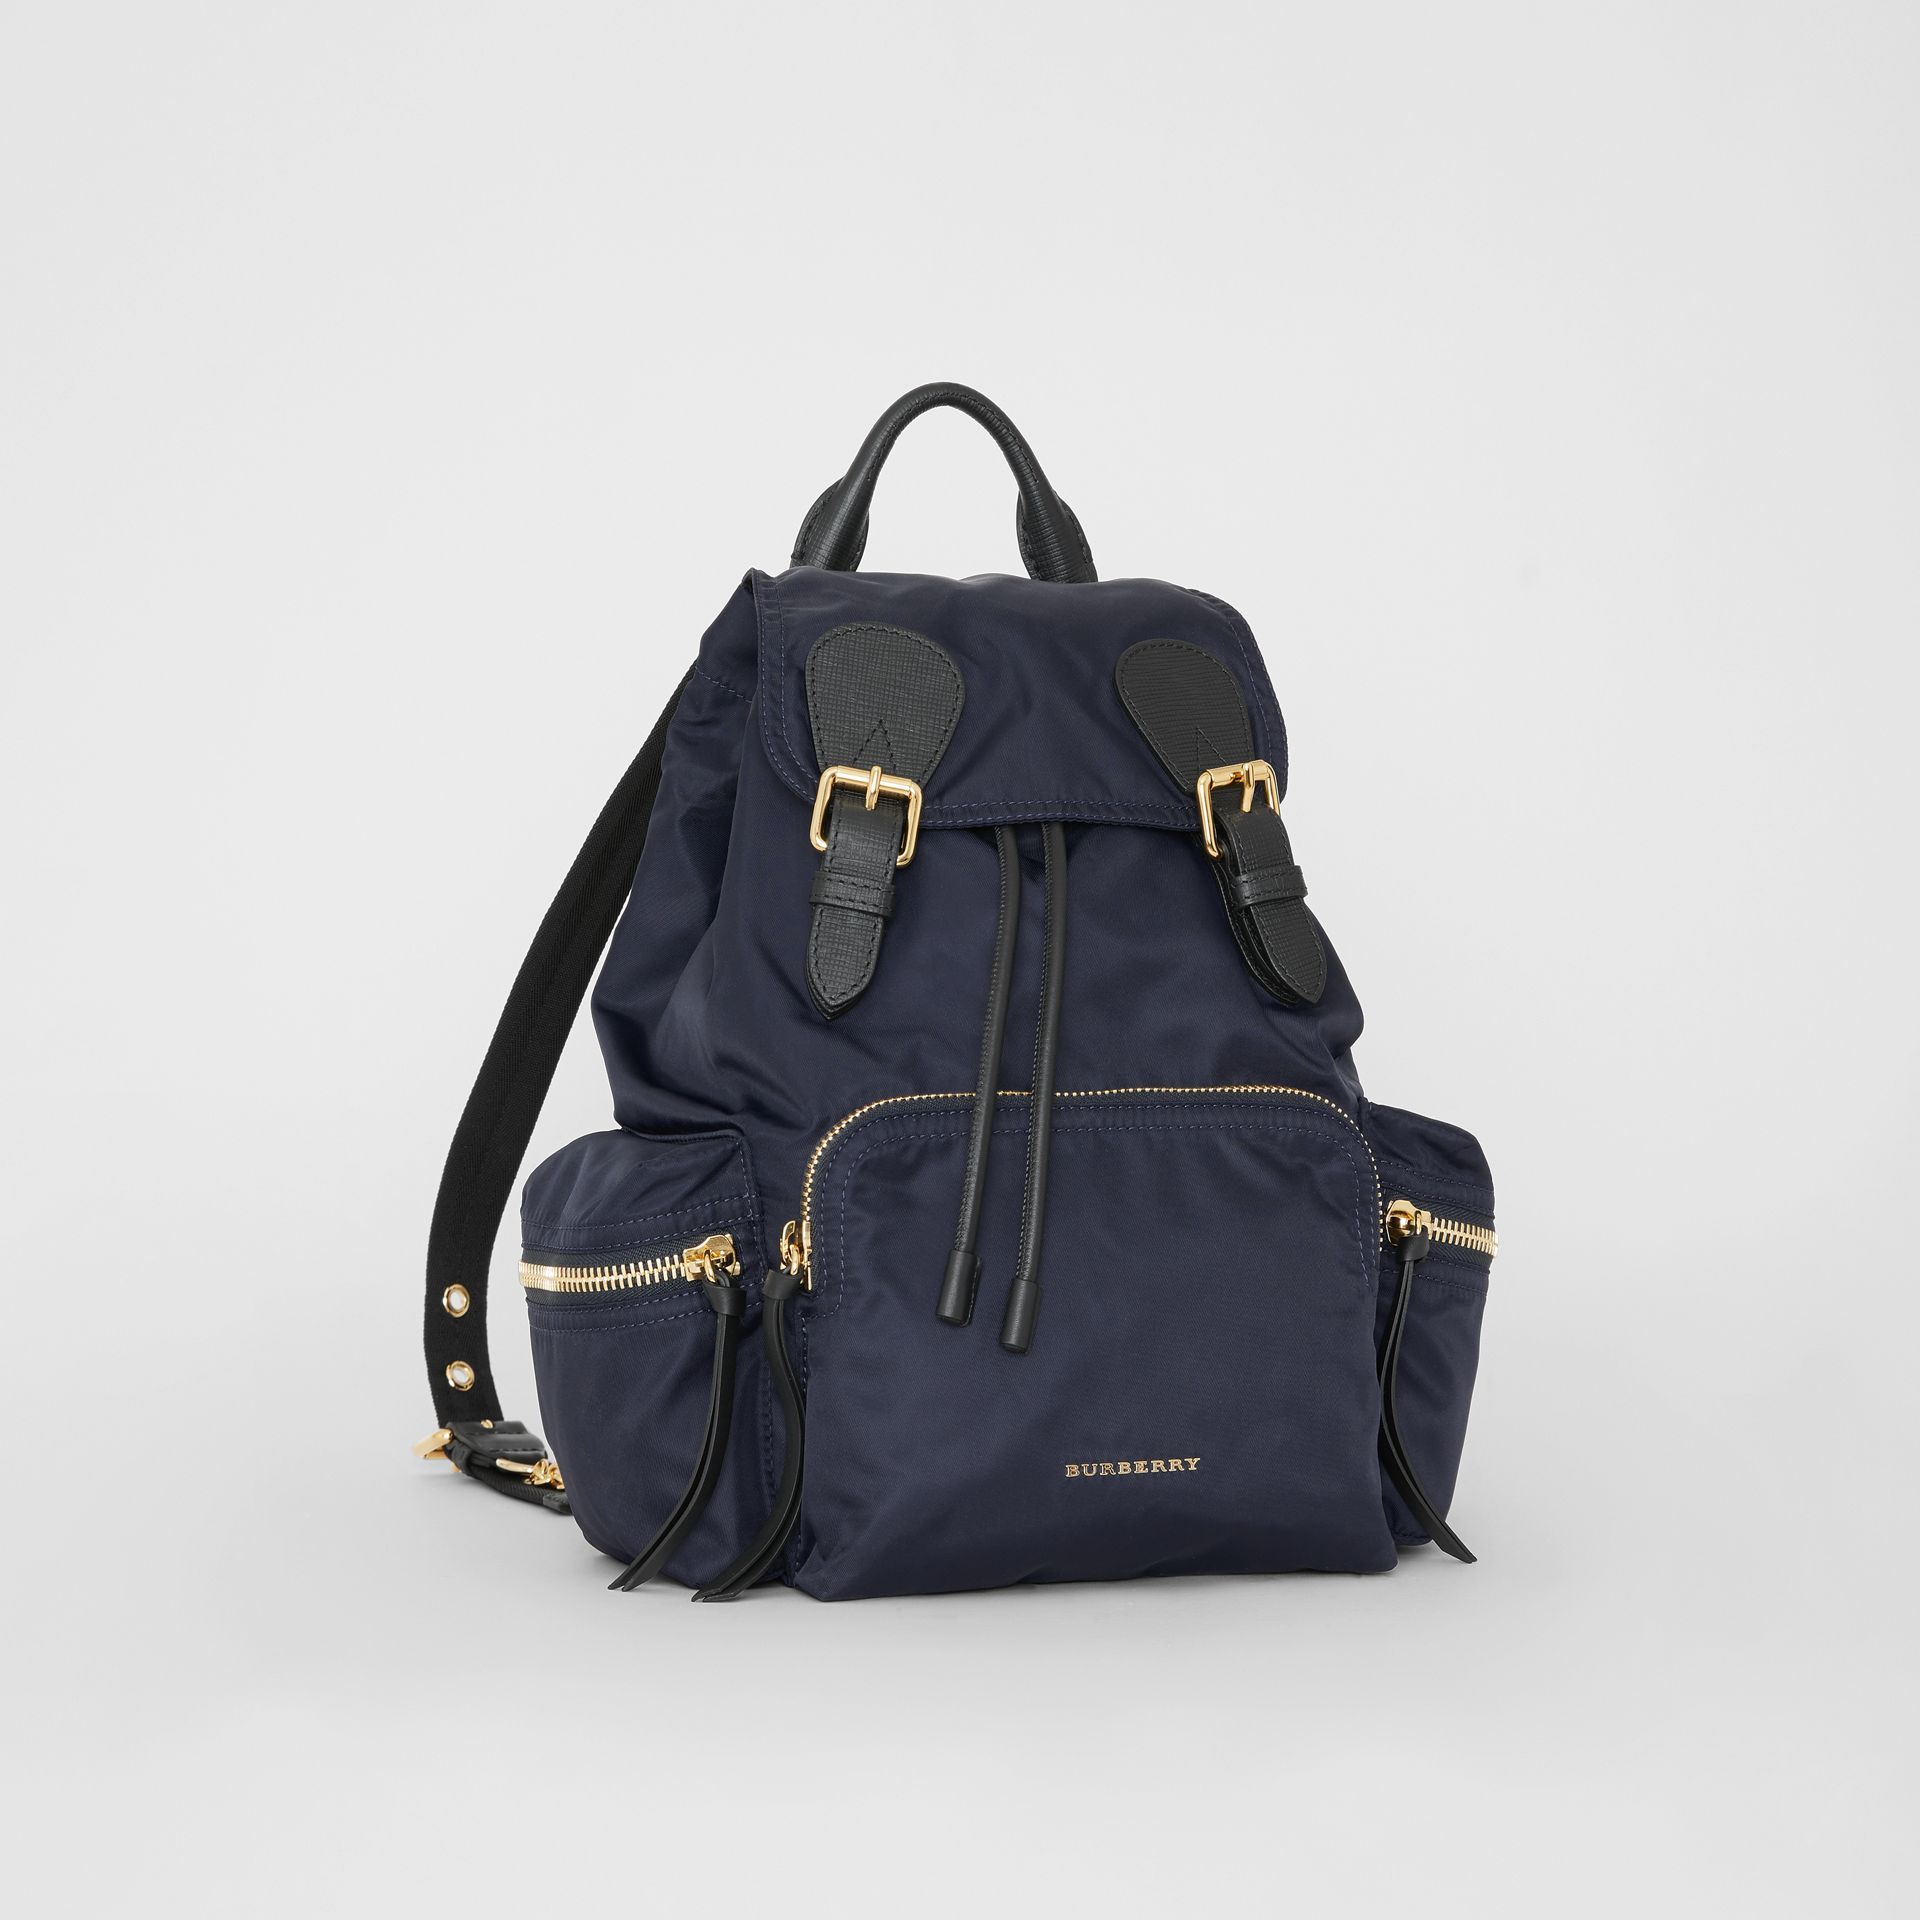 Zaino The Rucksack medio in nylon tecnico e pelle (Blu Inchiostro) - Donna | Burberry - immagine della galleria 10